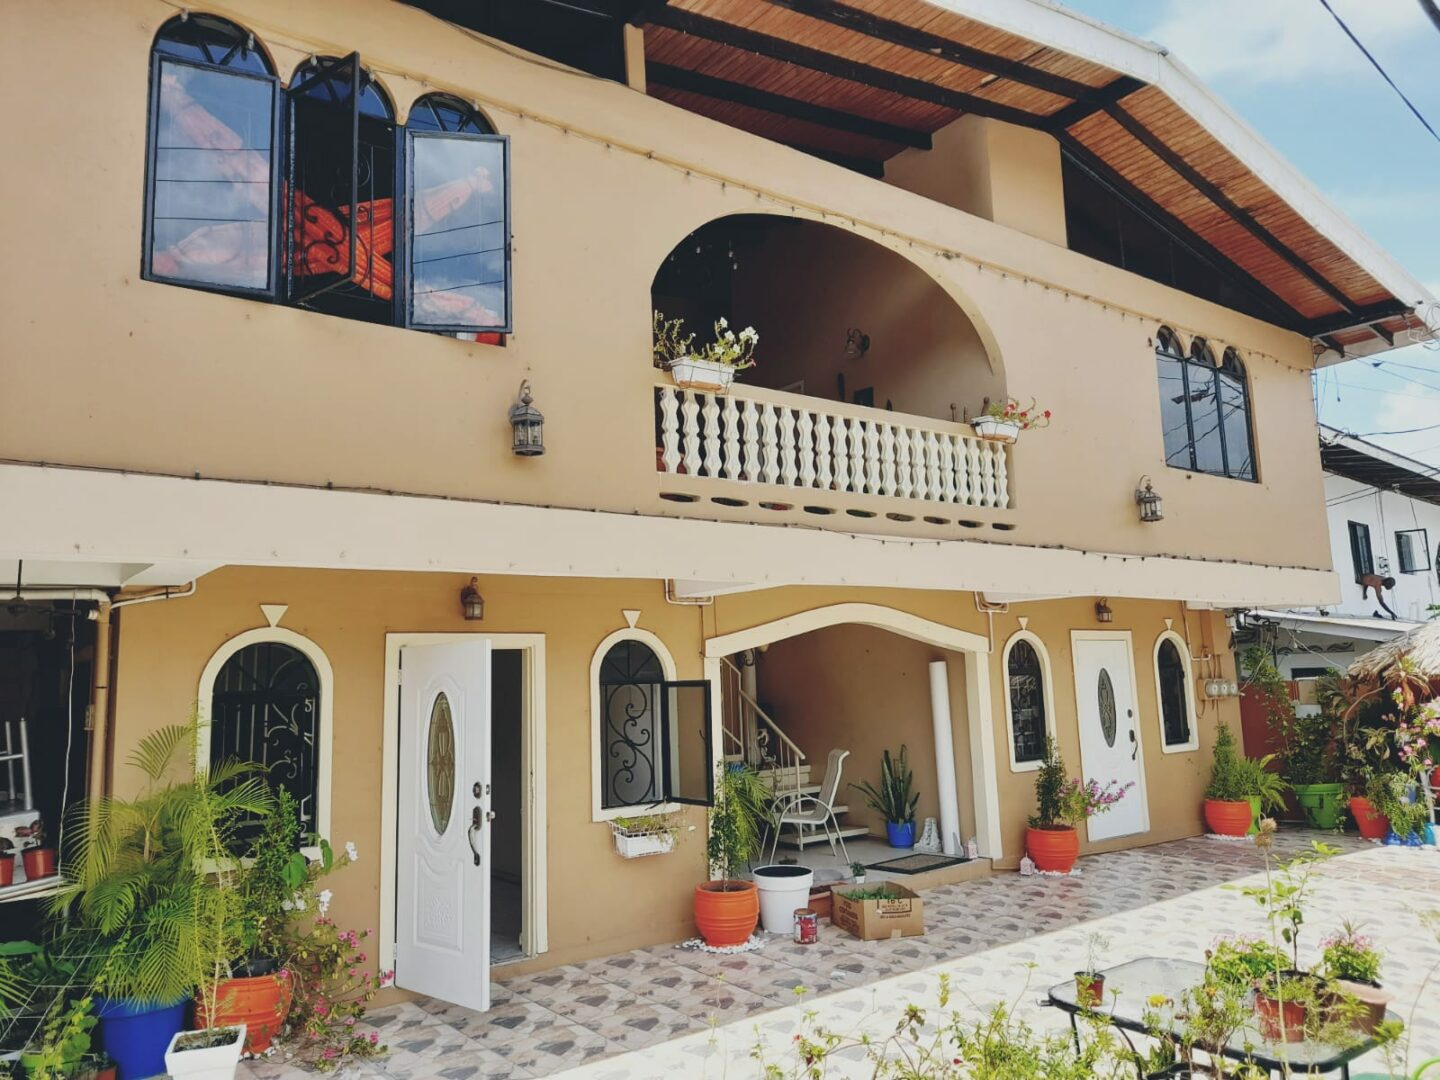 For Rent: Unfurnished 2 Bed,1 bath Apt in Diego Martin